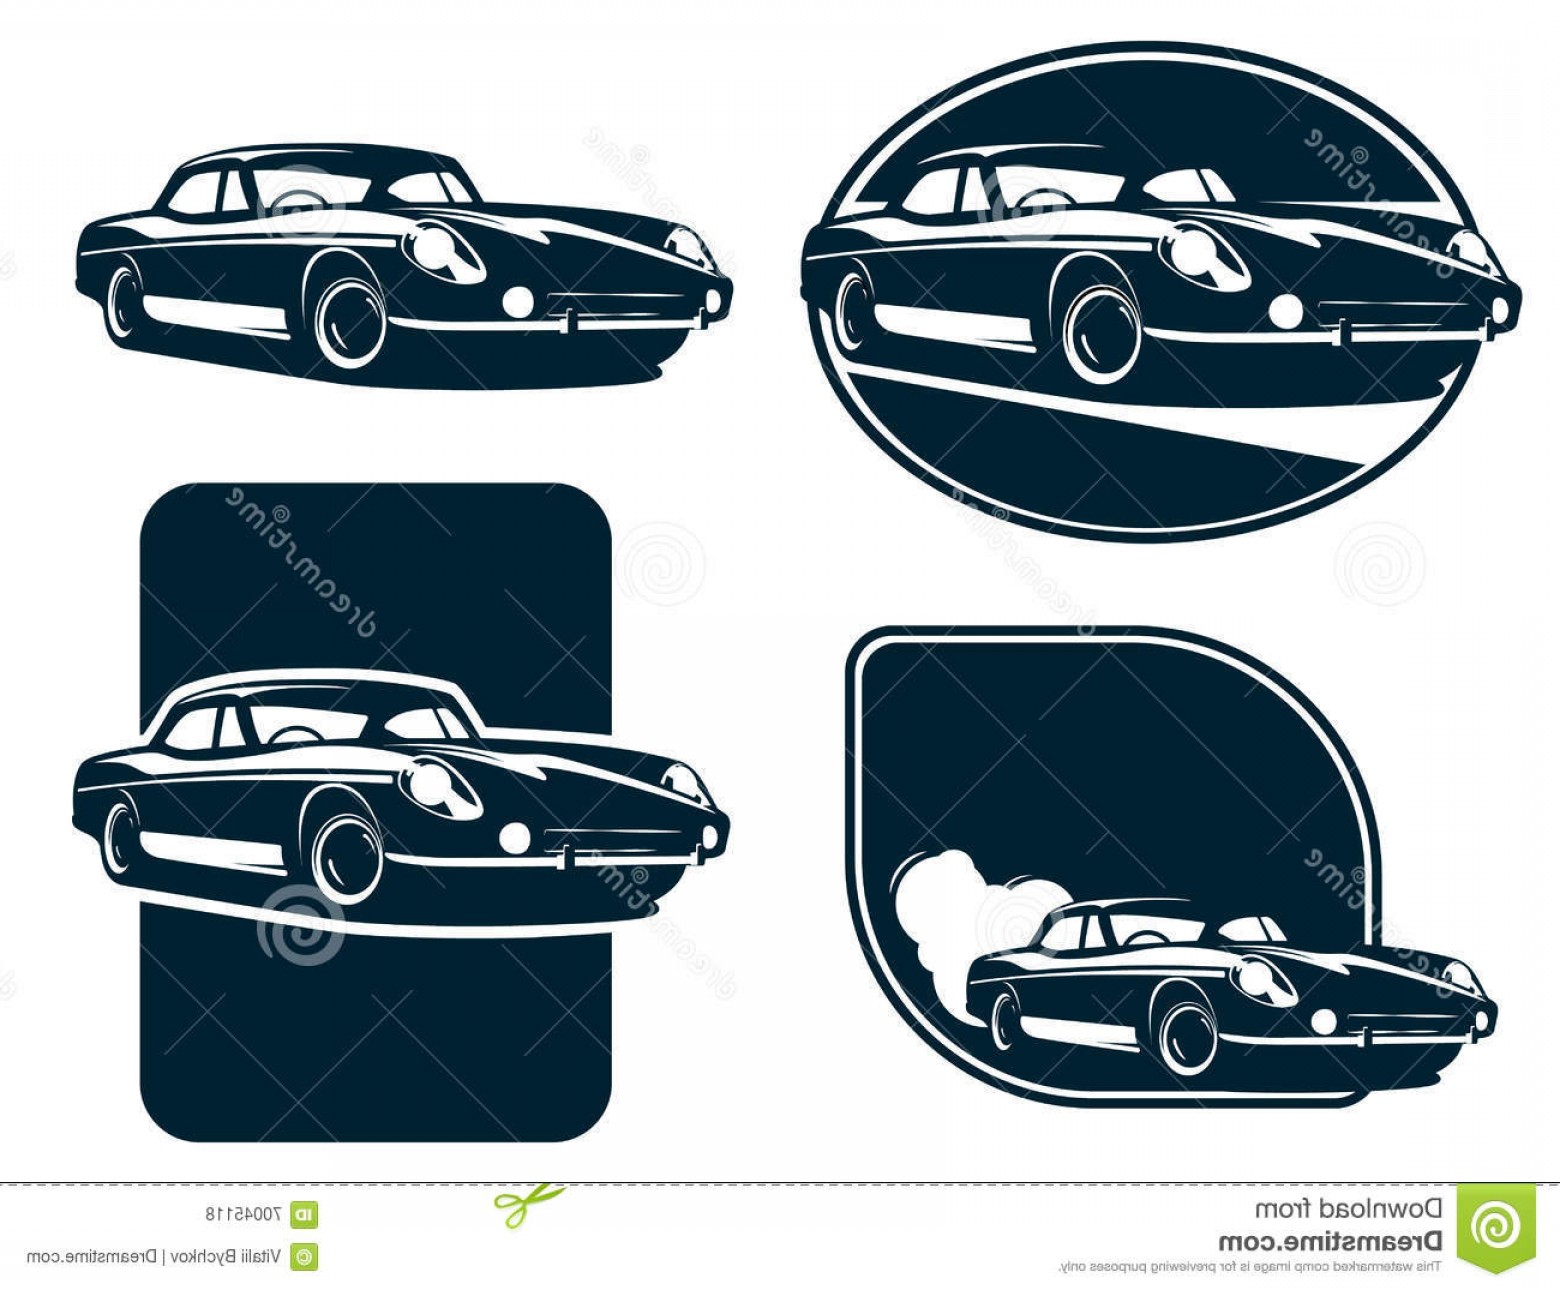 Car Silhouette Vector Free: Stock Illustration Classic Car Silhouette Labels Vintage Retro Car Vector Classic Sports Car Sport Image